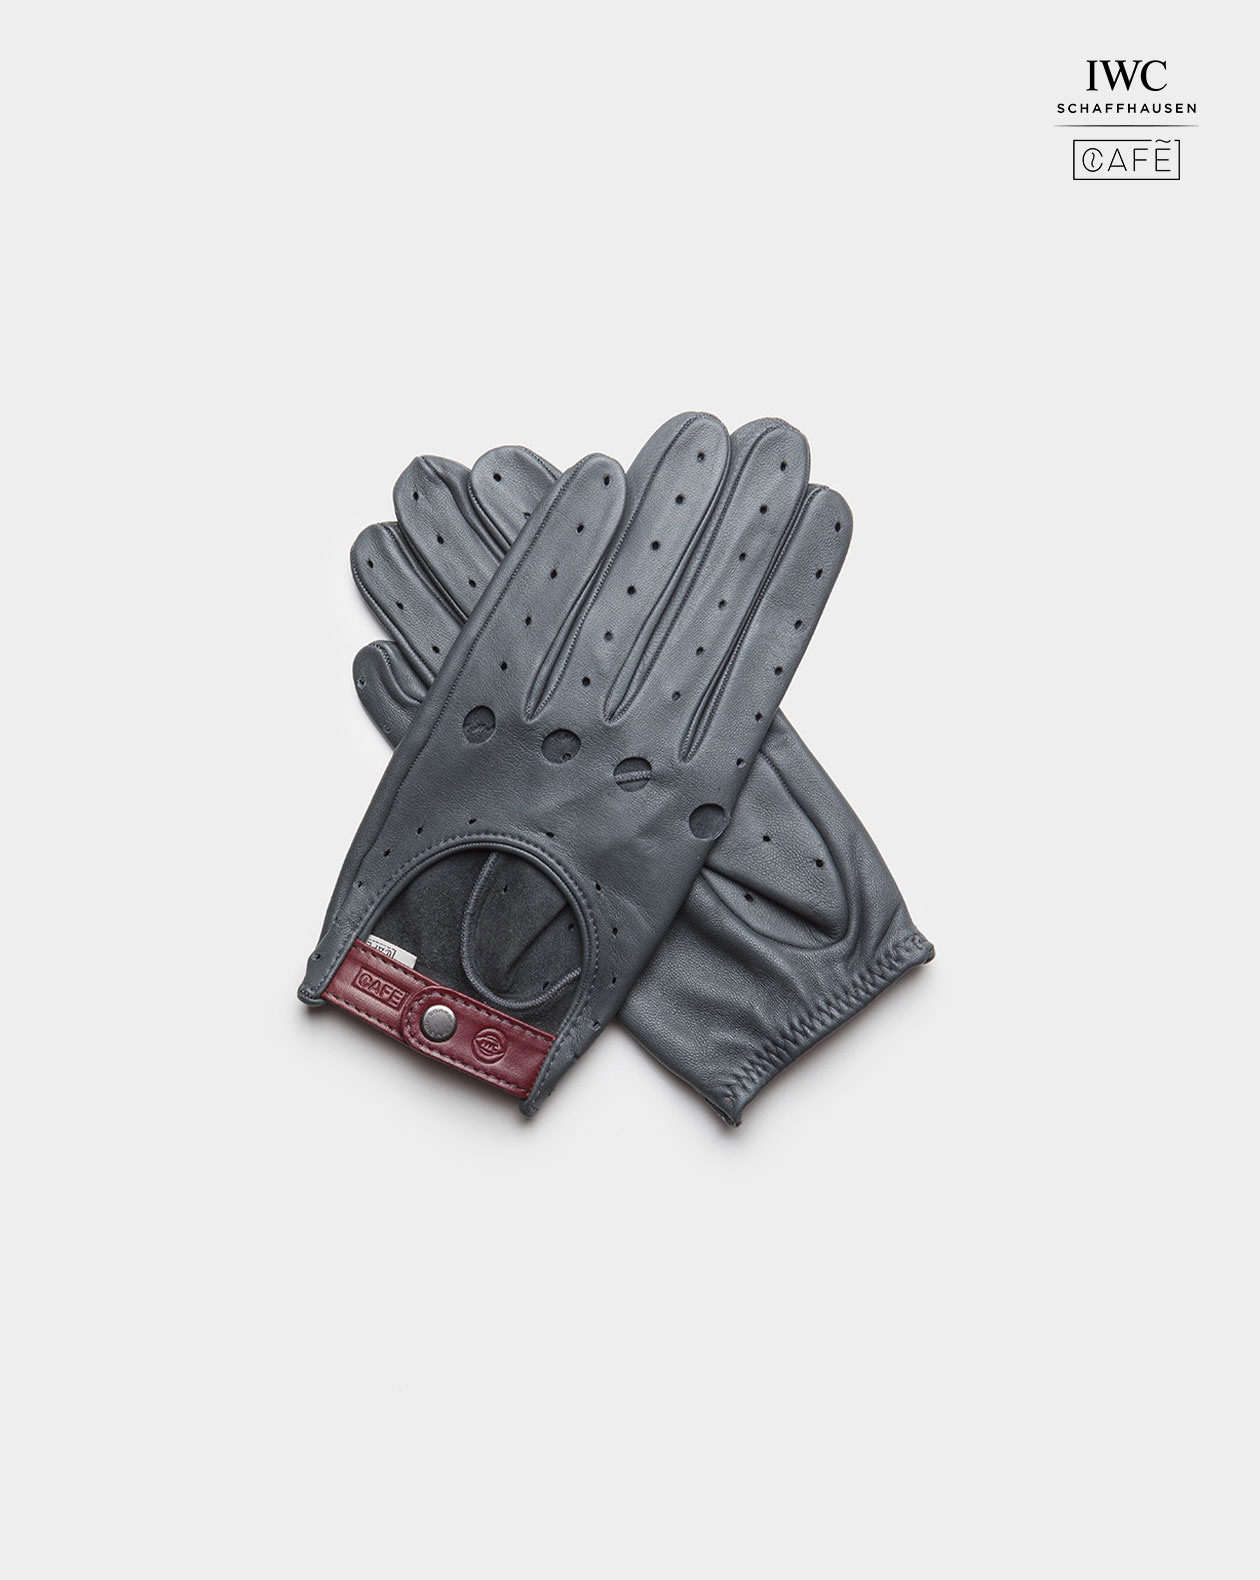 IWC driving gloves grey color